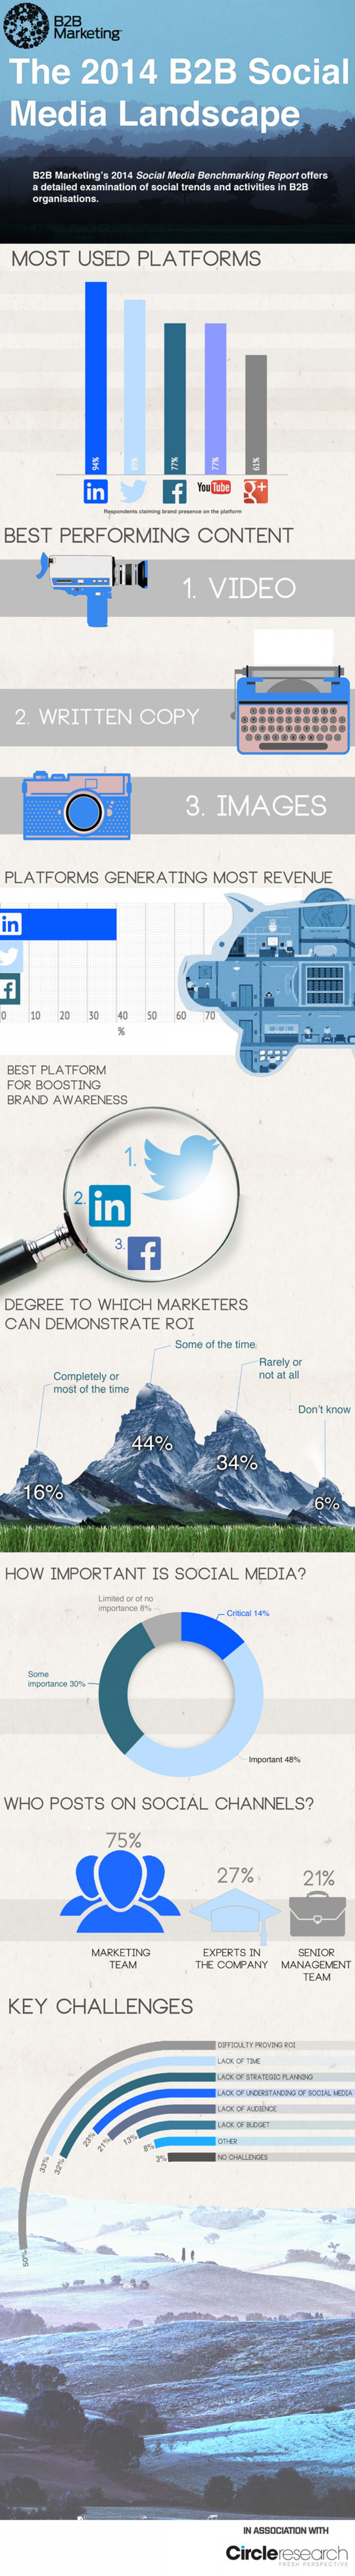 The 2014 B2B Social Media Landscape Infographic